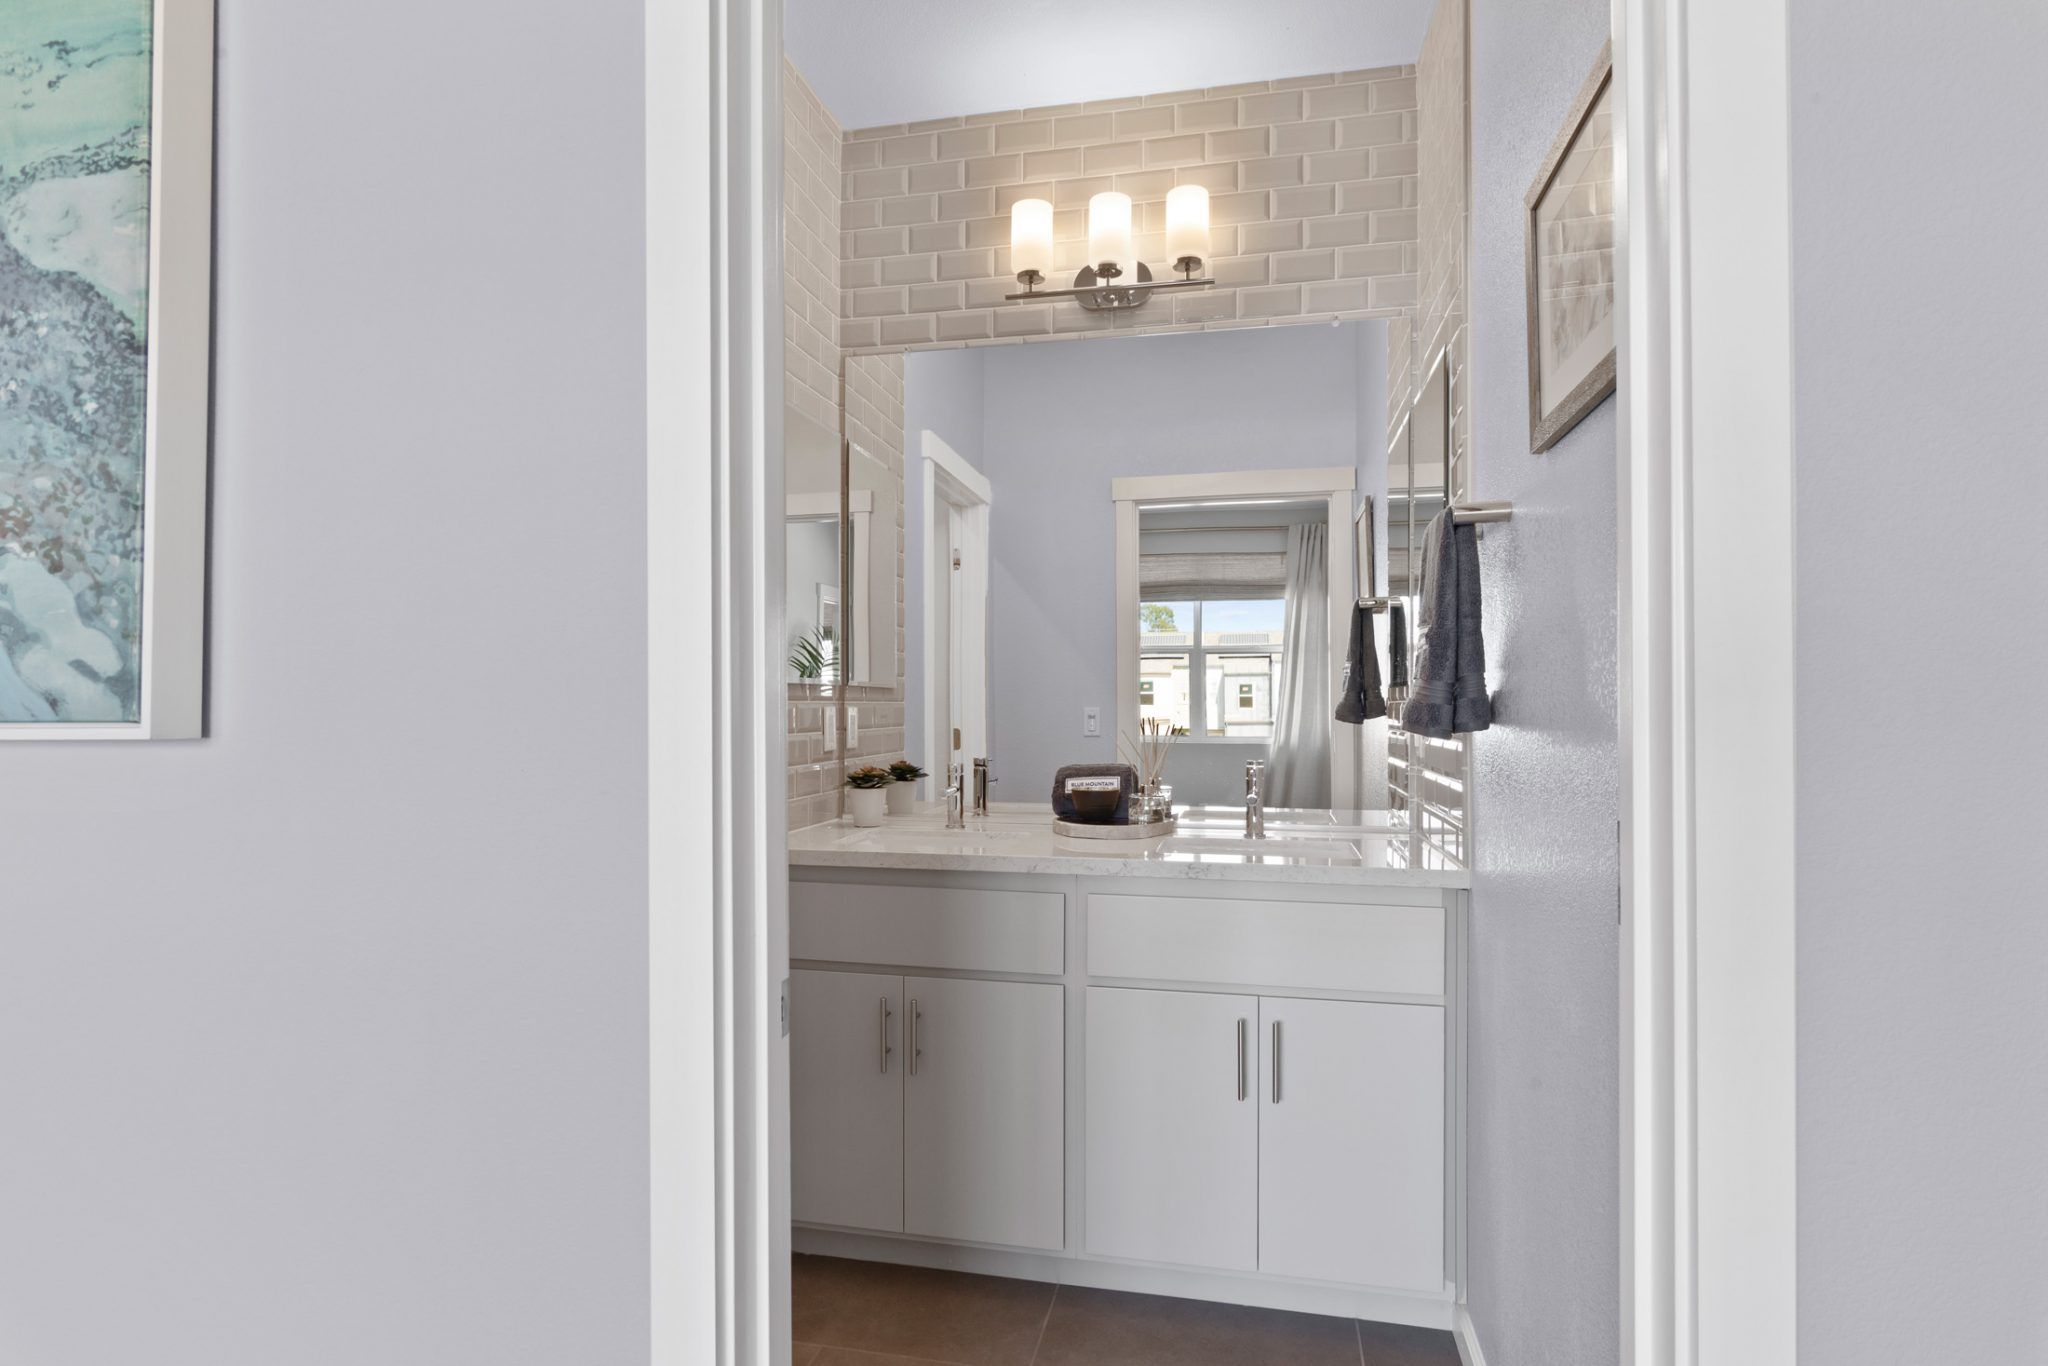 Bathroom featured in the Plan B By Blue Mountain Communities in Santa Rosa, CA